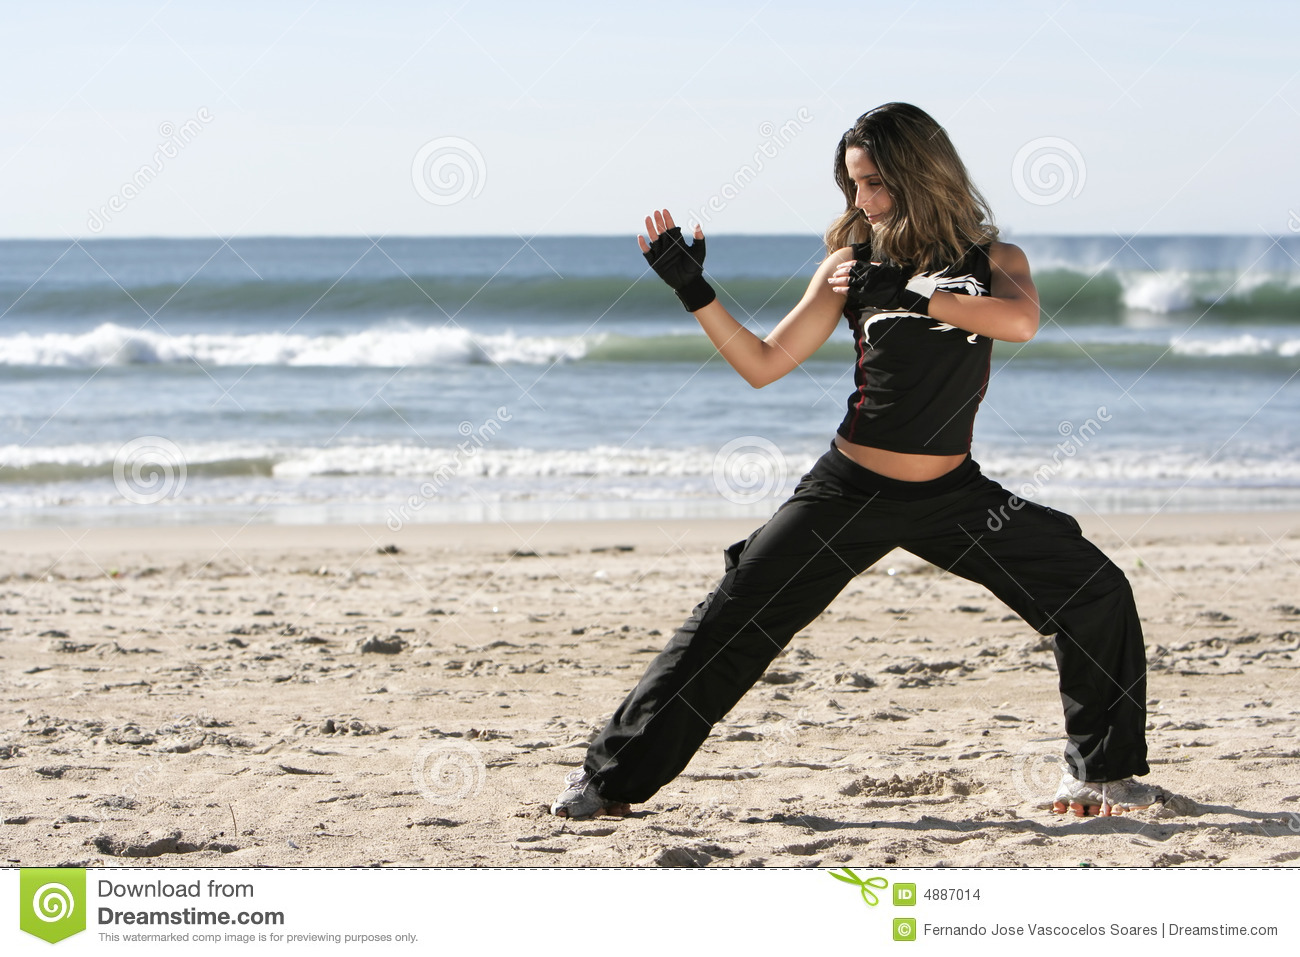 How to Fight Girls: 14 Steps with Pictures - wikiHow